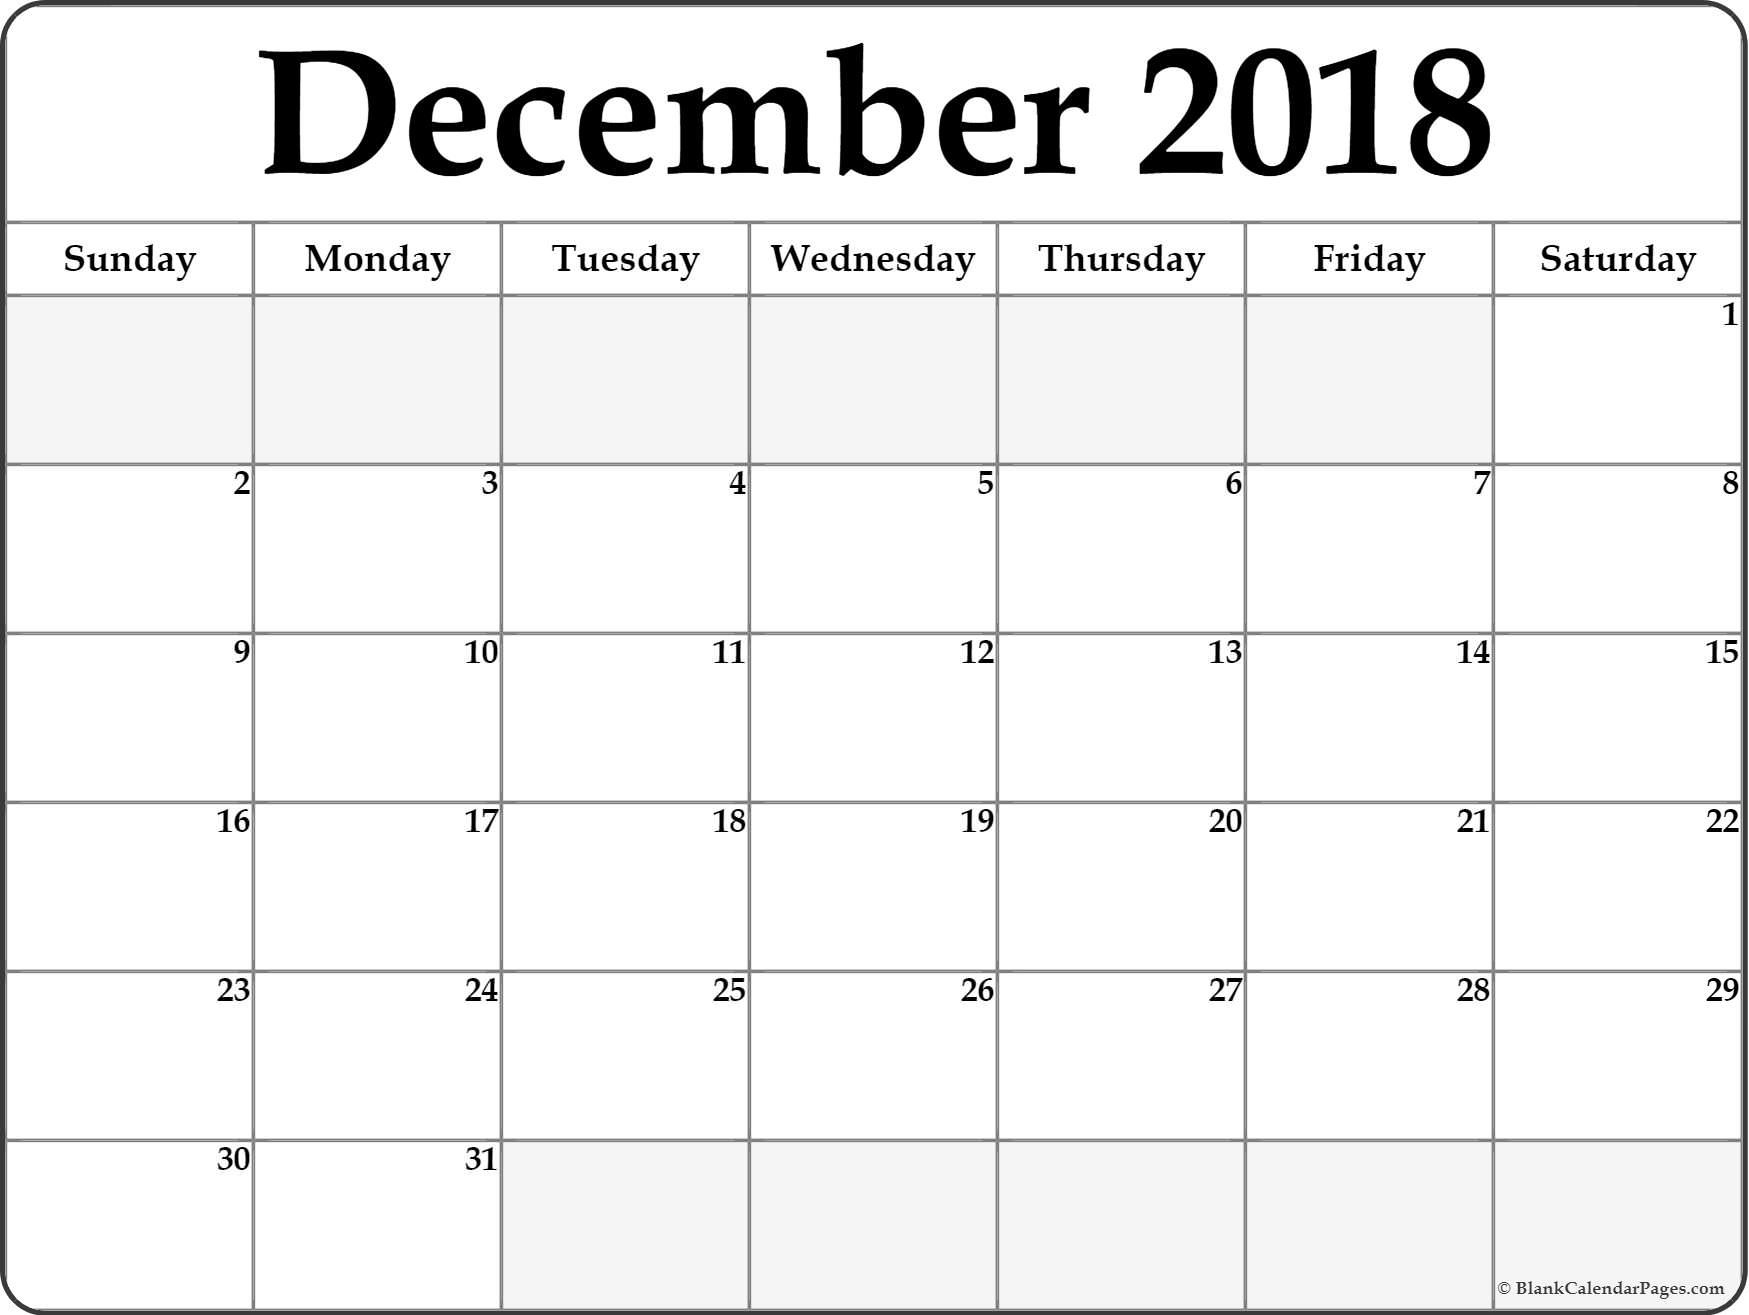 December 2018 Blank Calendar . December 2018 Calendar Printable in Blank Calendar Template December